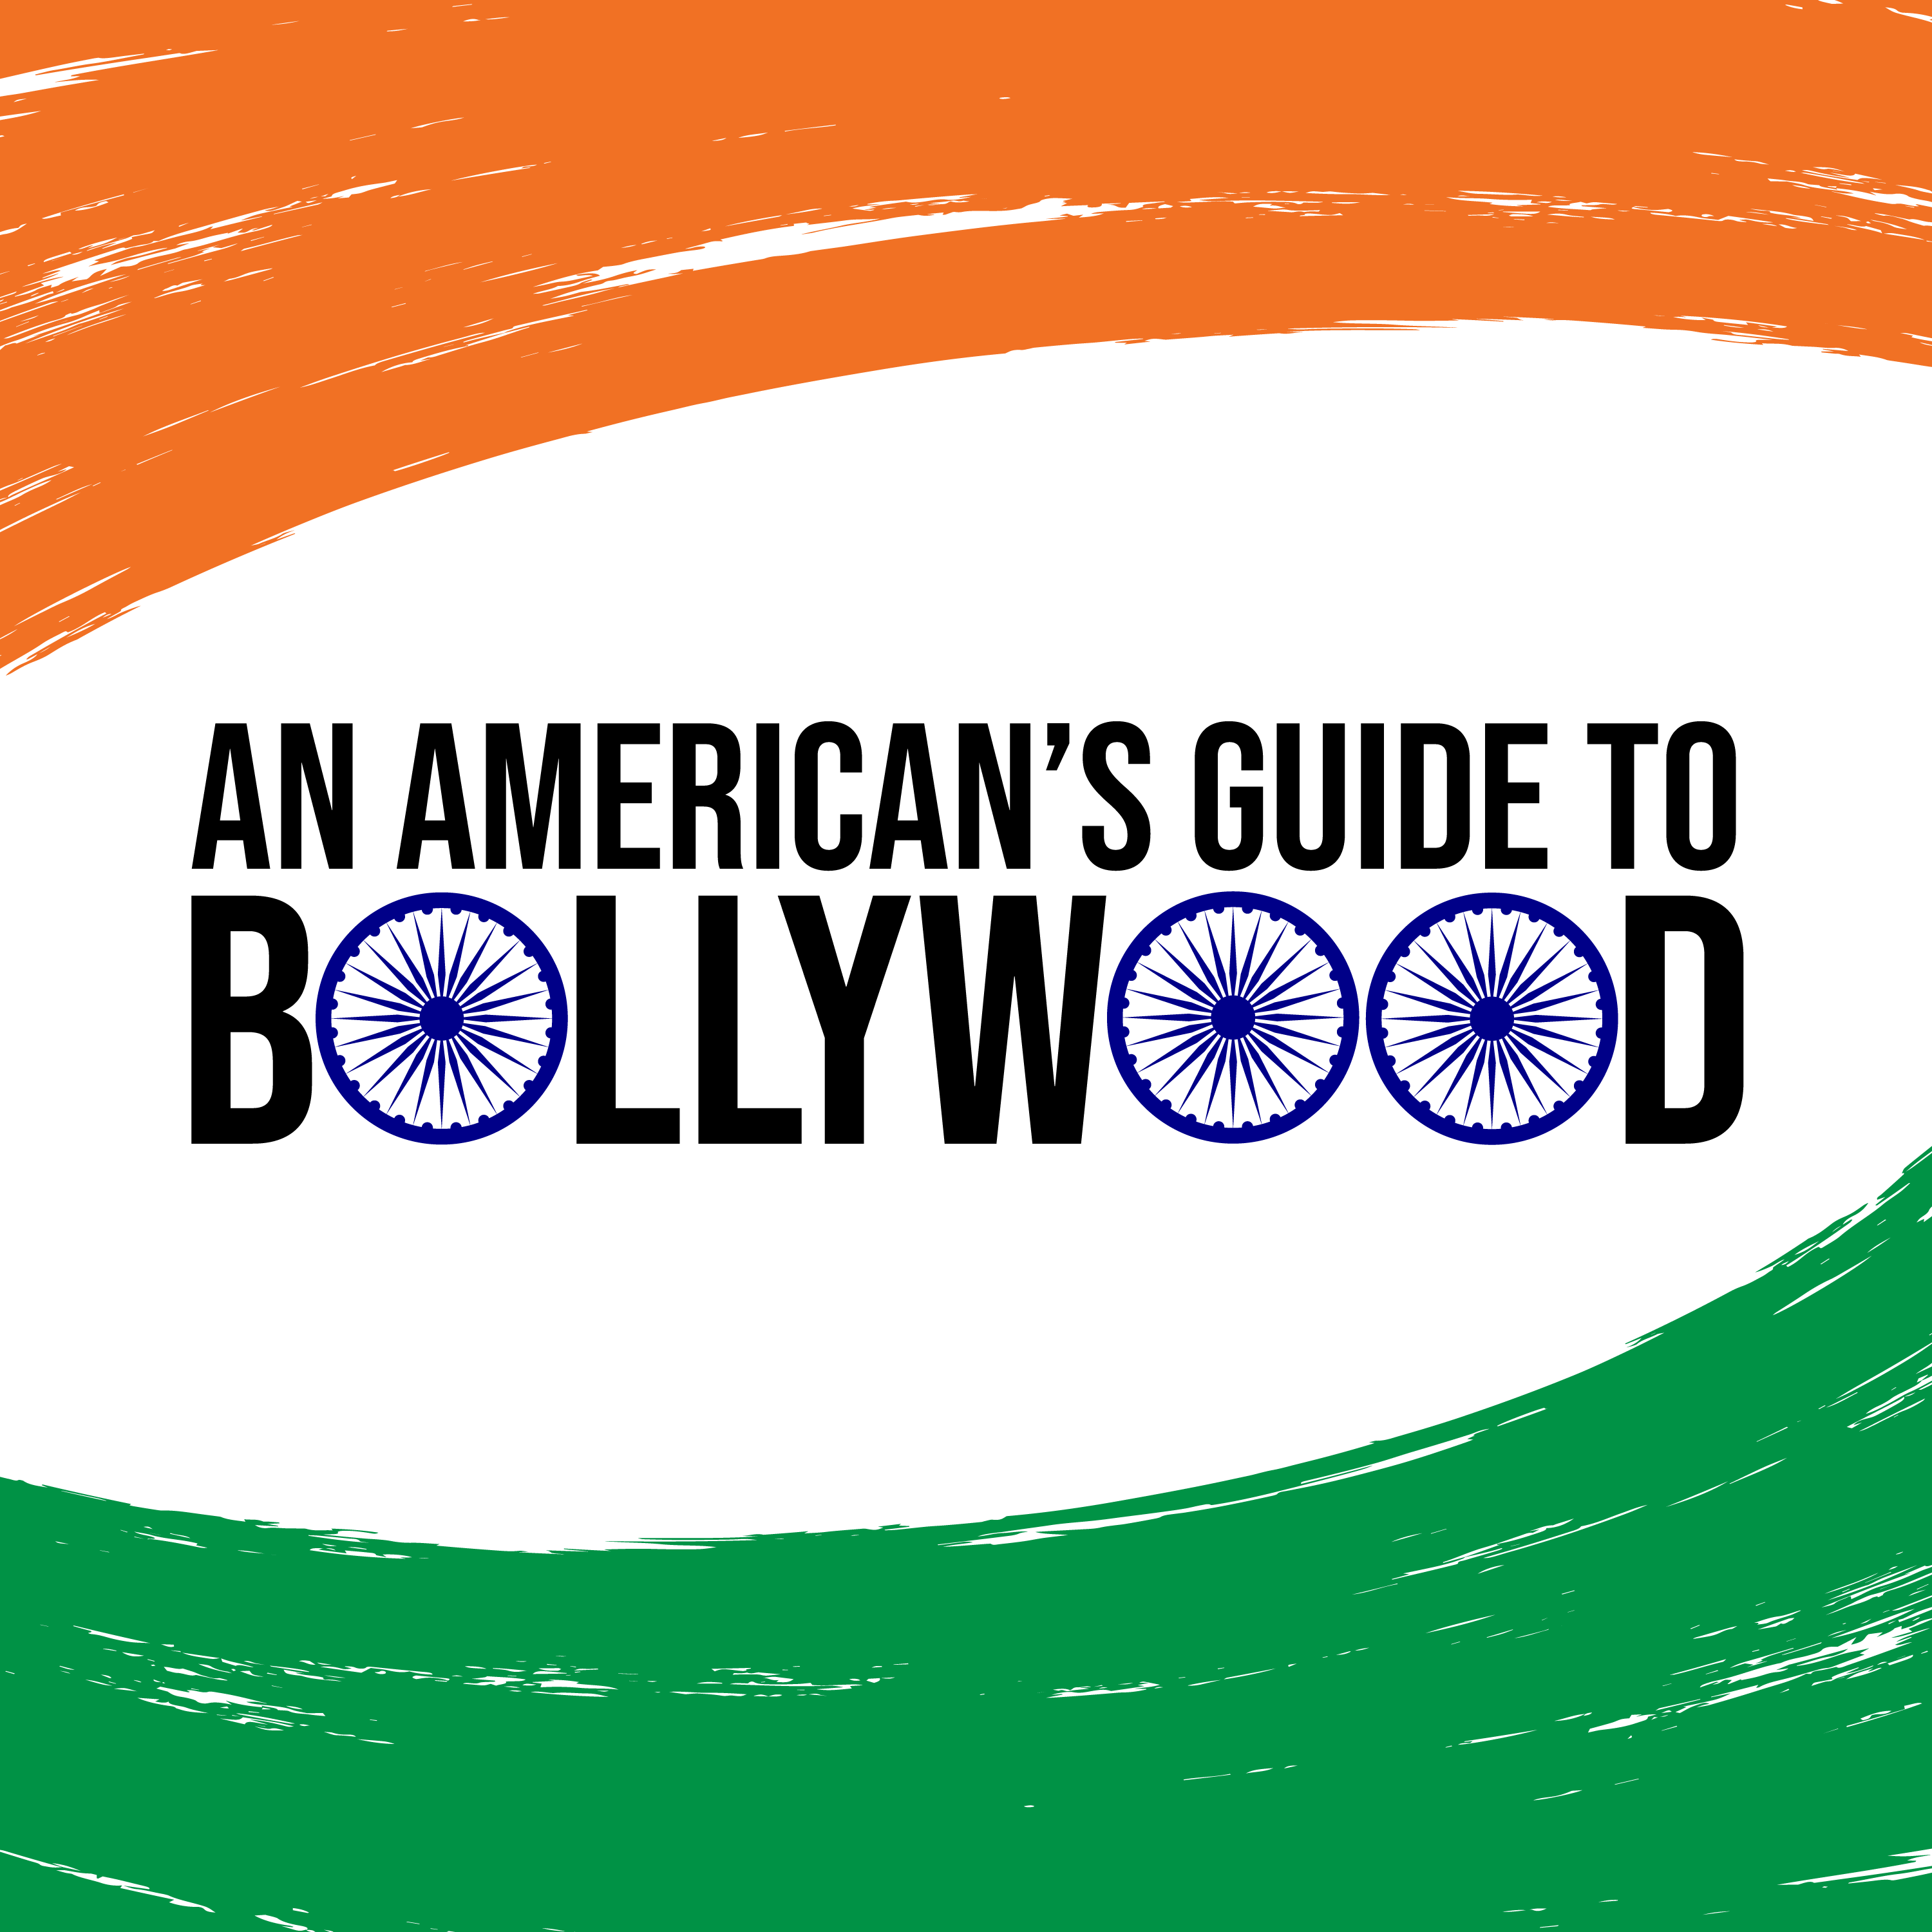 An American's Guide to Bollywood